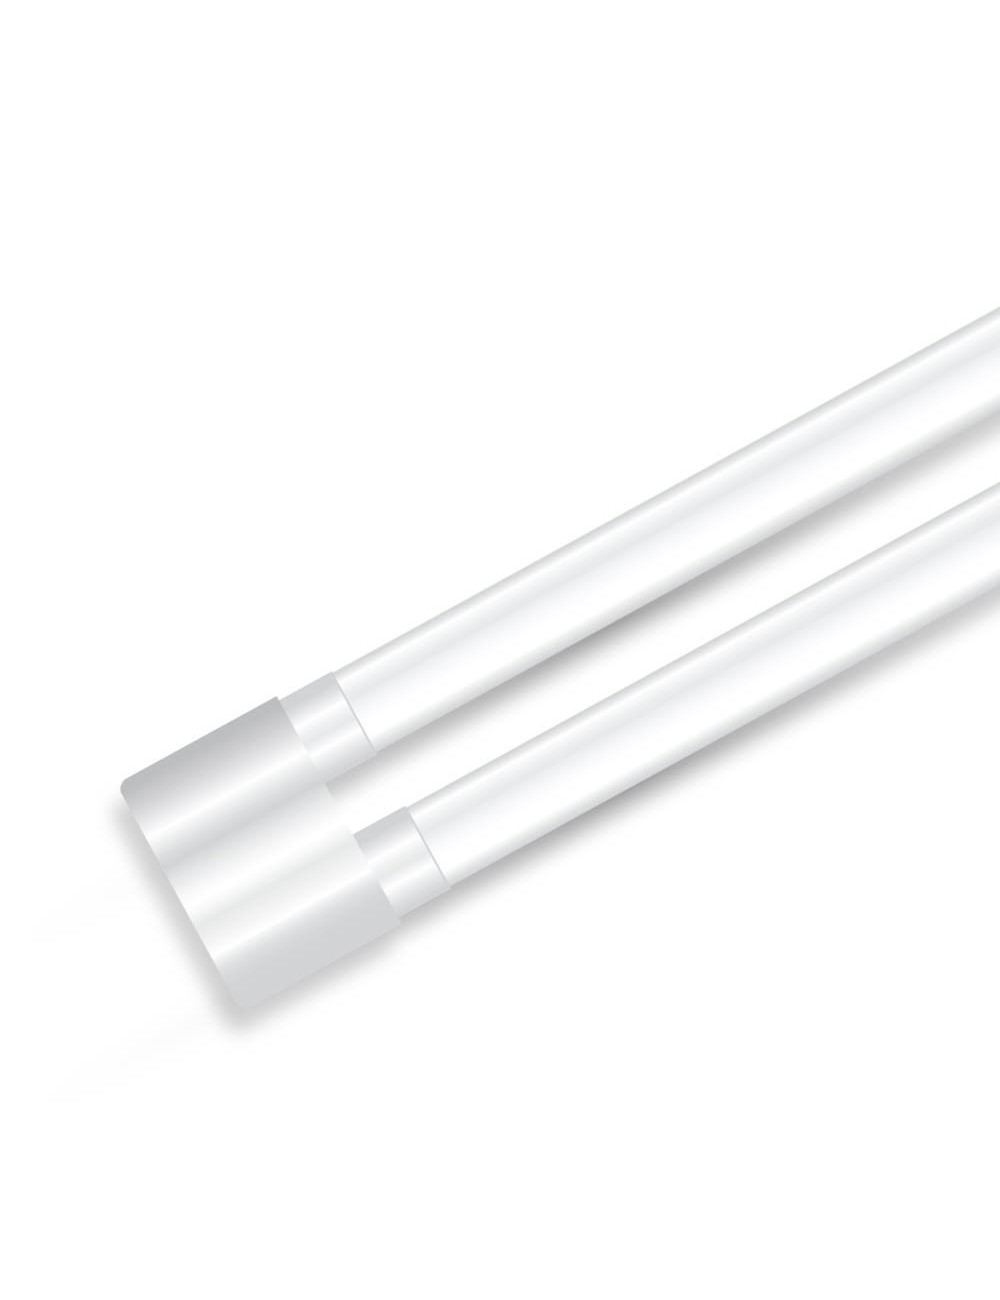 Tubo led doppio t8 nano plastic shoplite 36w 120cm g13 v for Tubi luminosi led